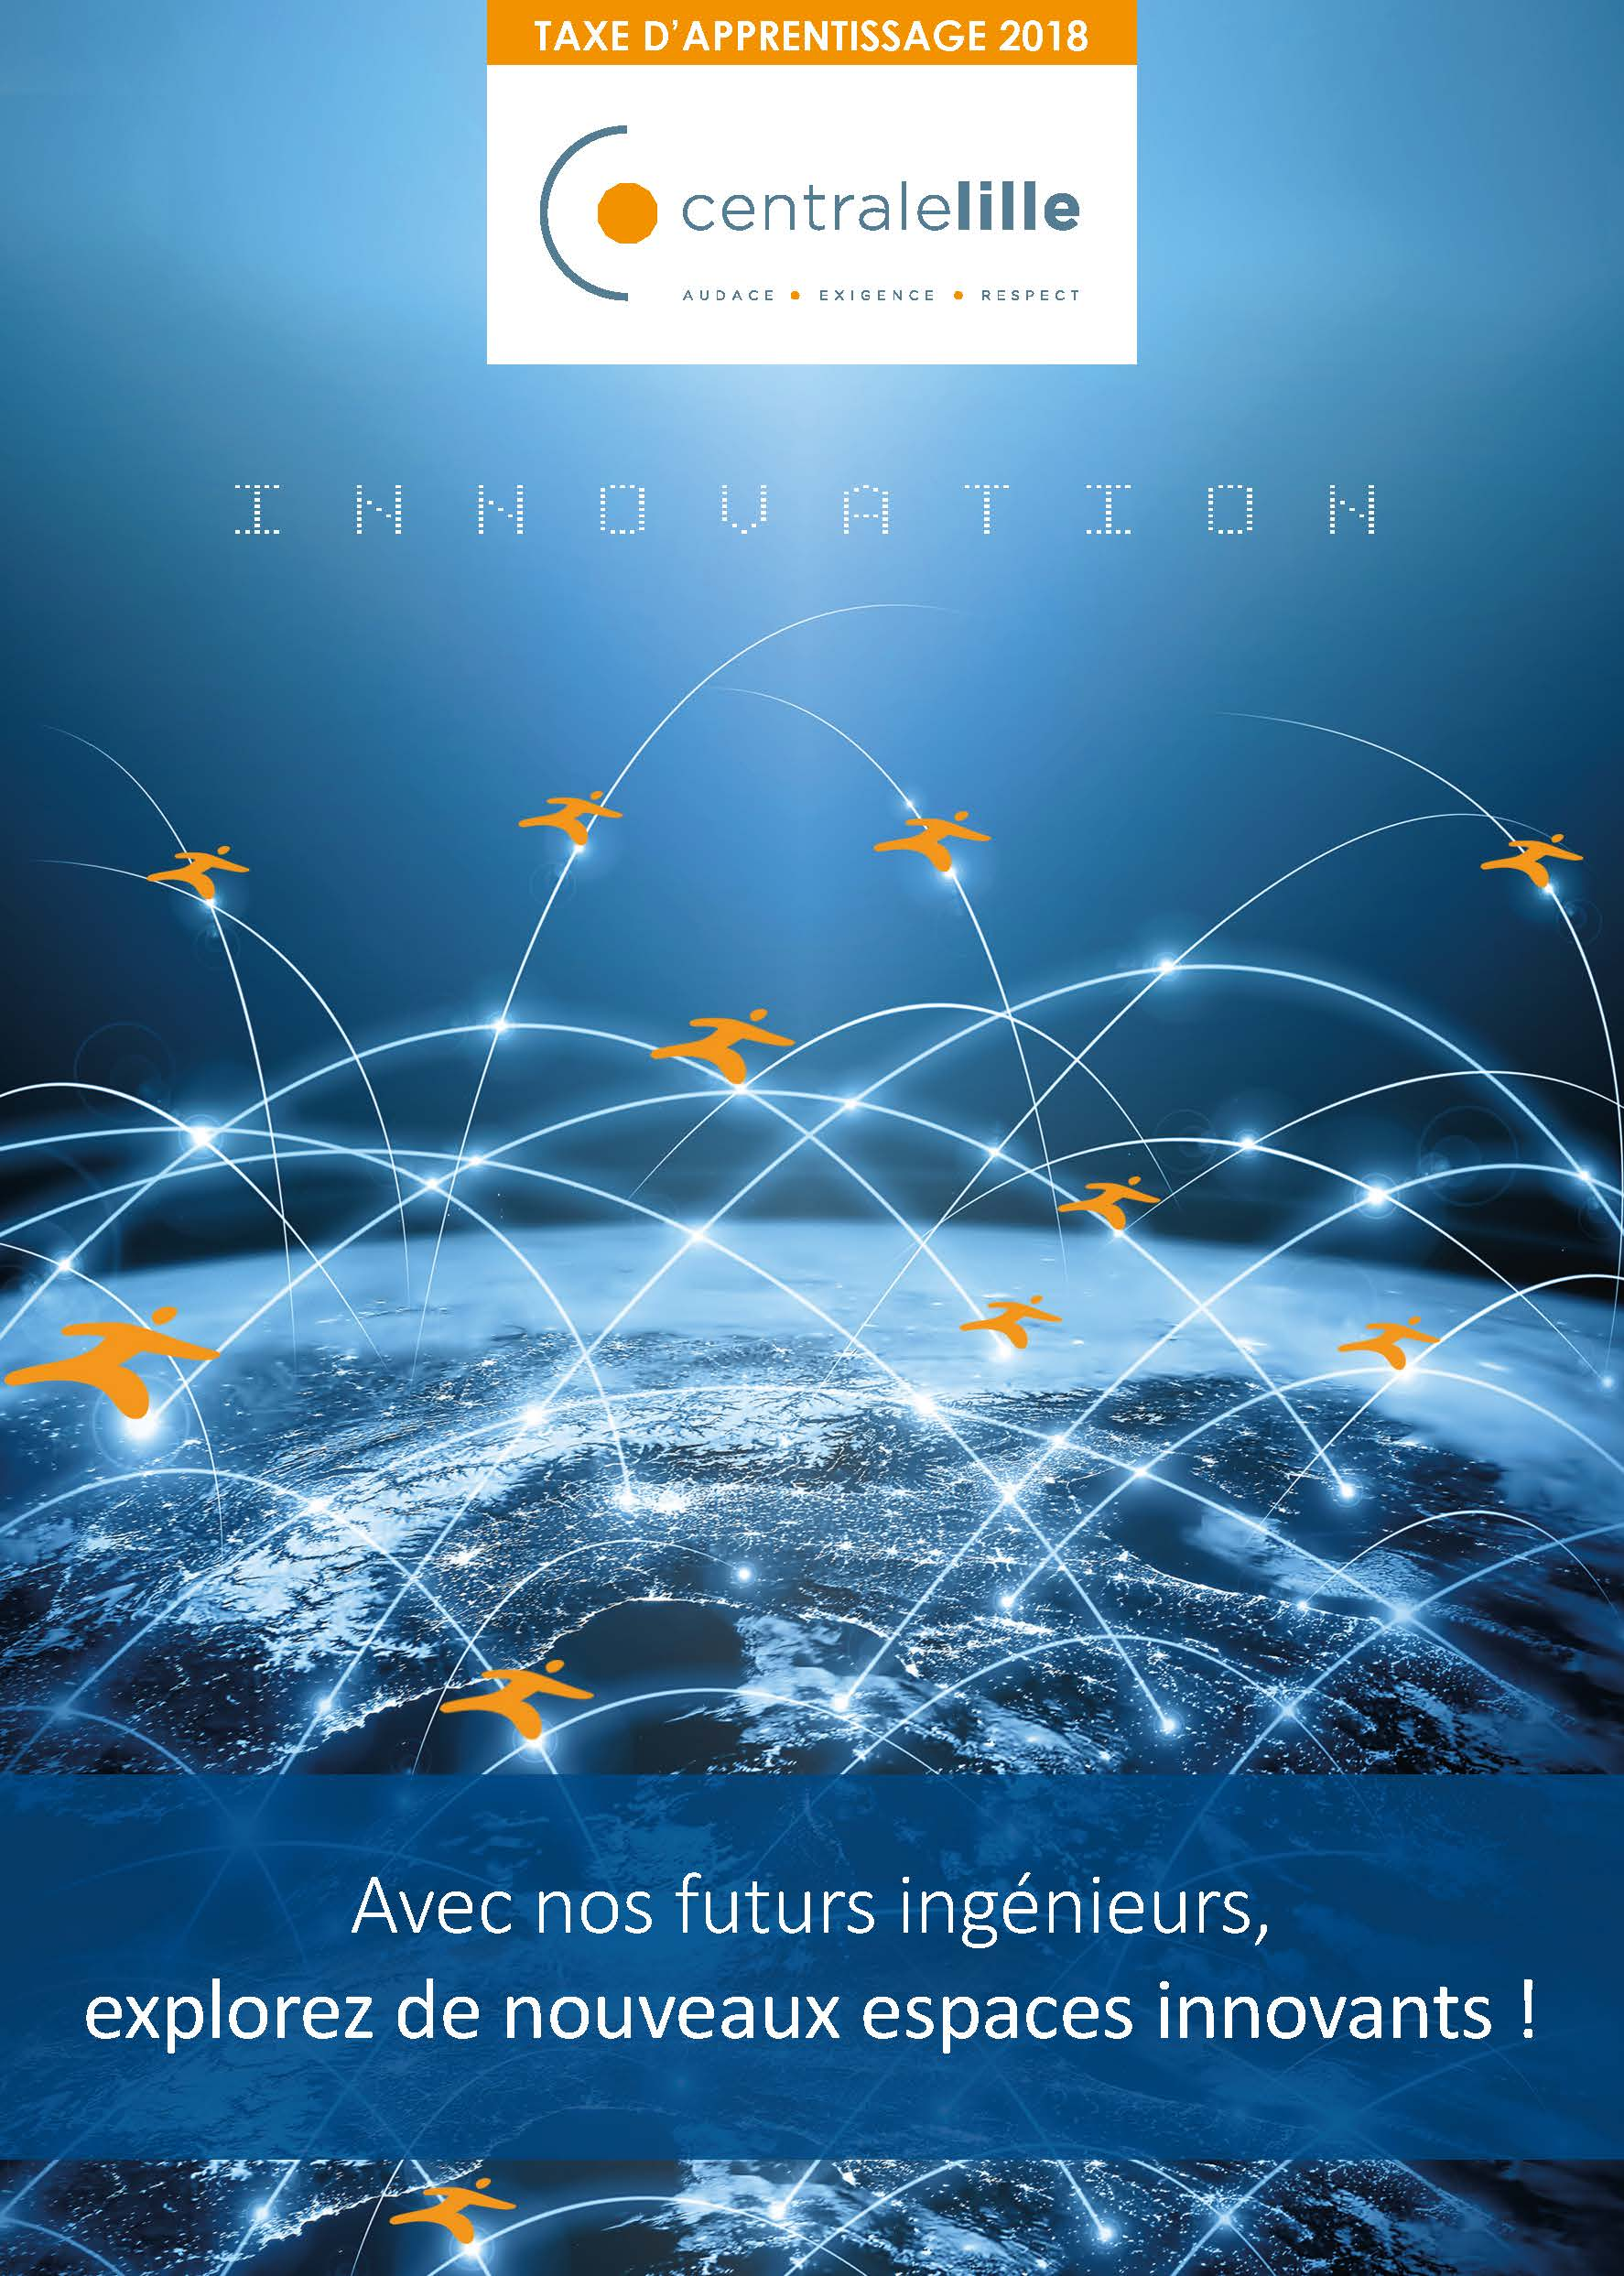 4-pages-taxe-apprentissage-flyer-centrale-lille-2018_Page_1